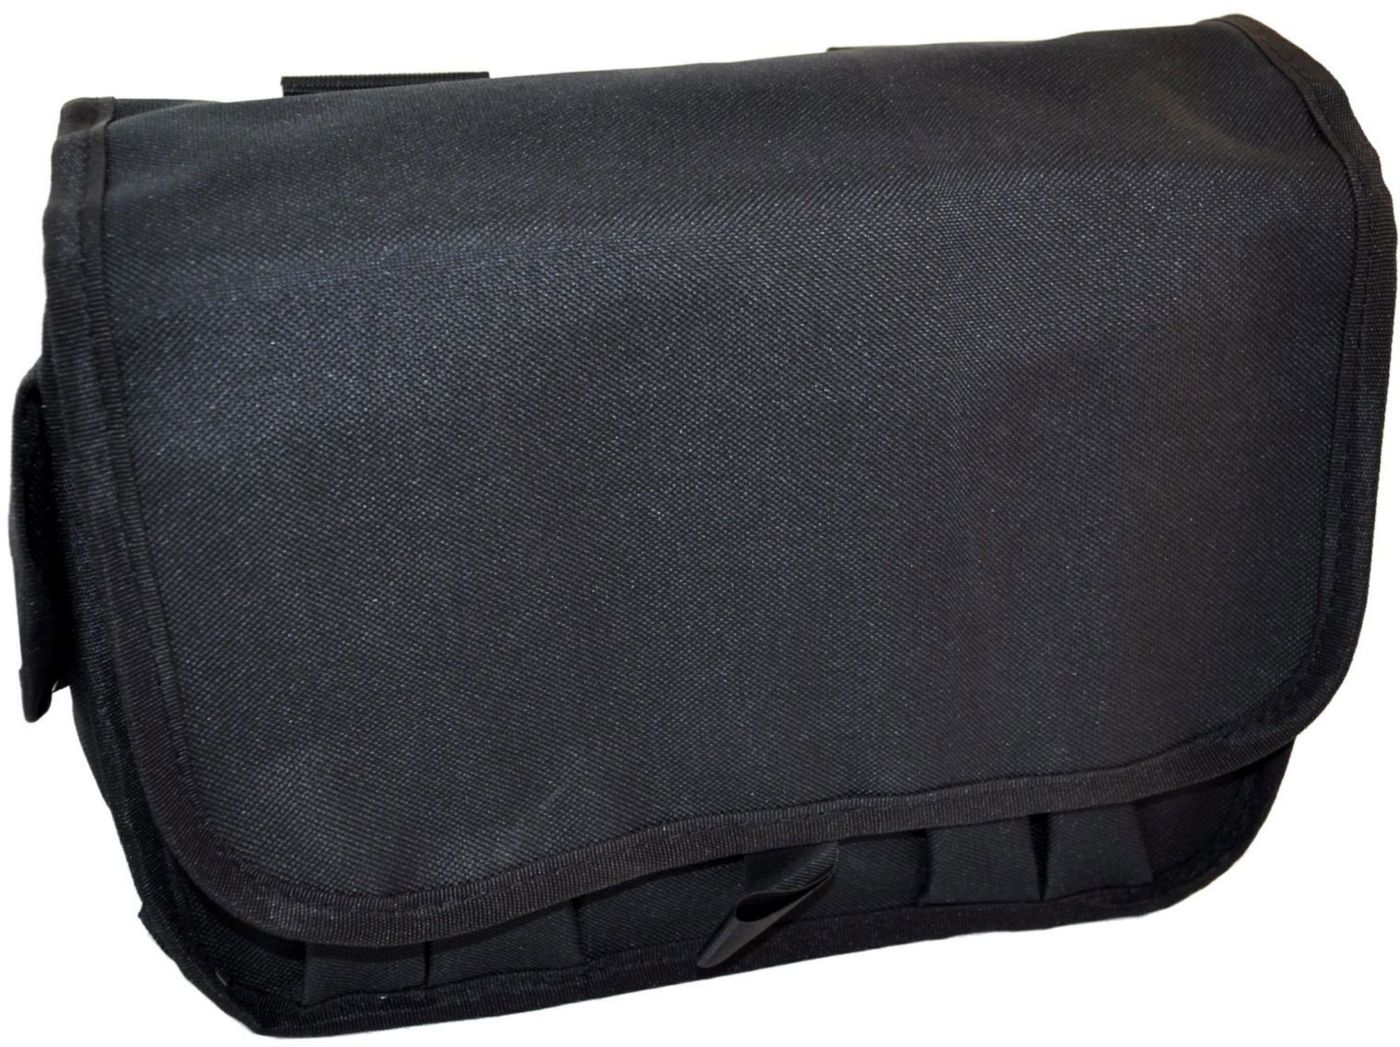 F.J. Neil 10 Compartment Deluxe Tackle Bag